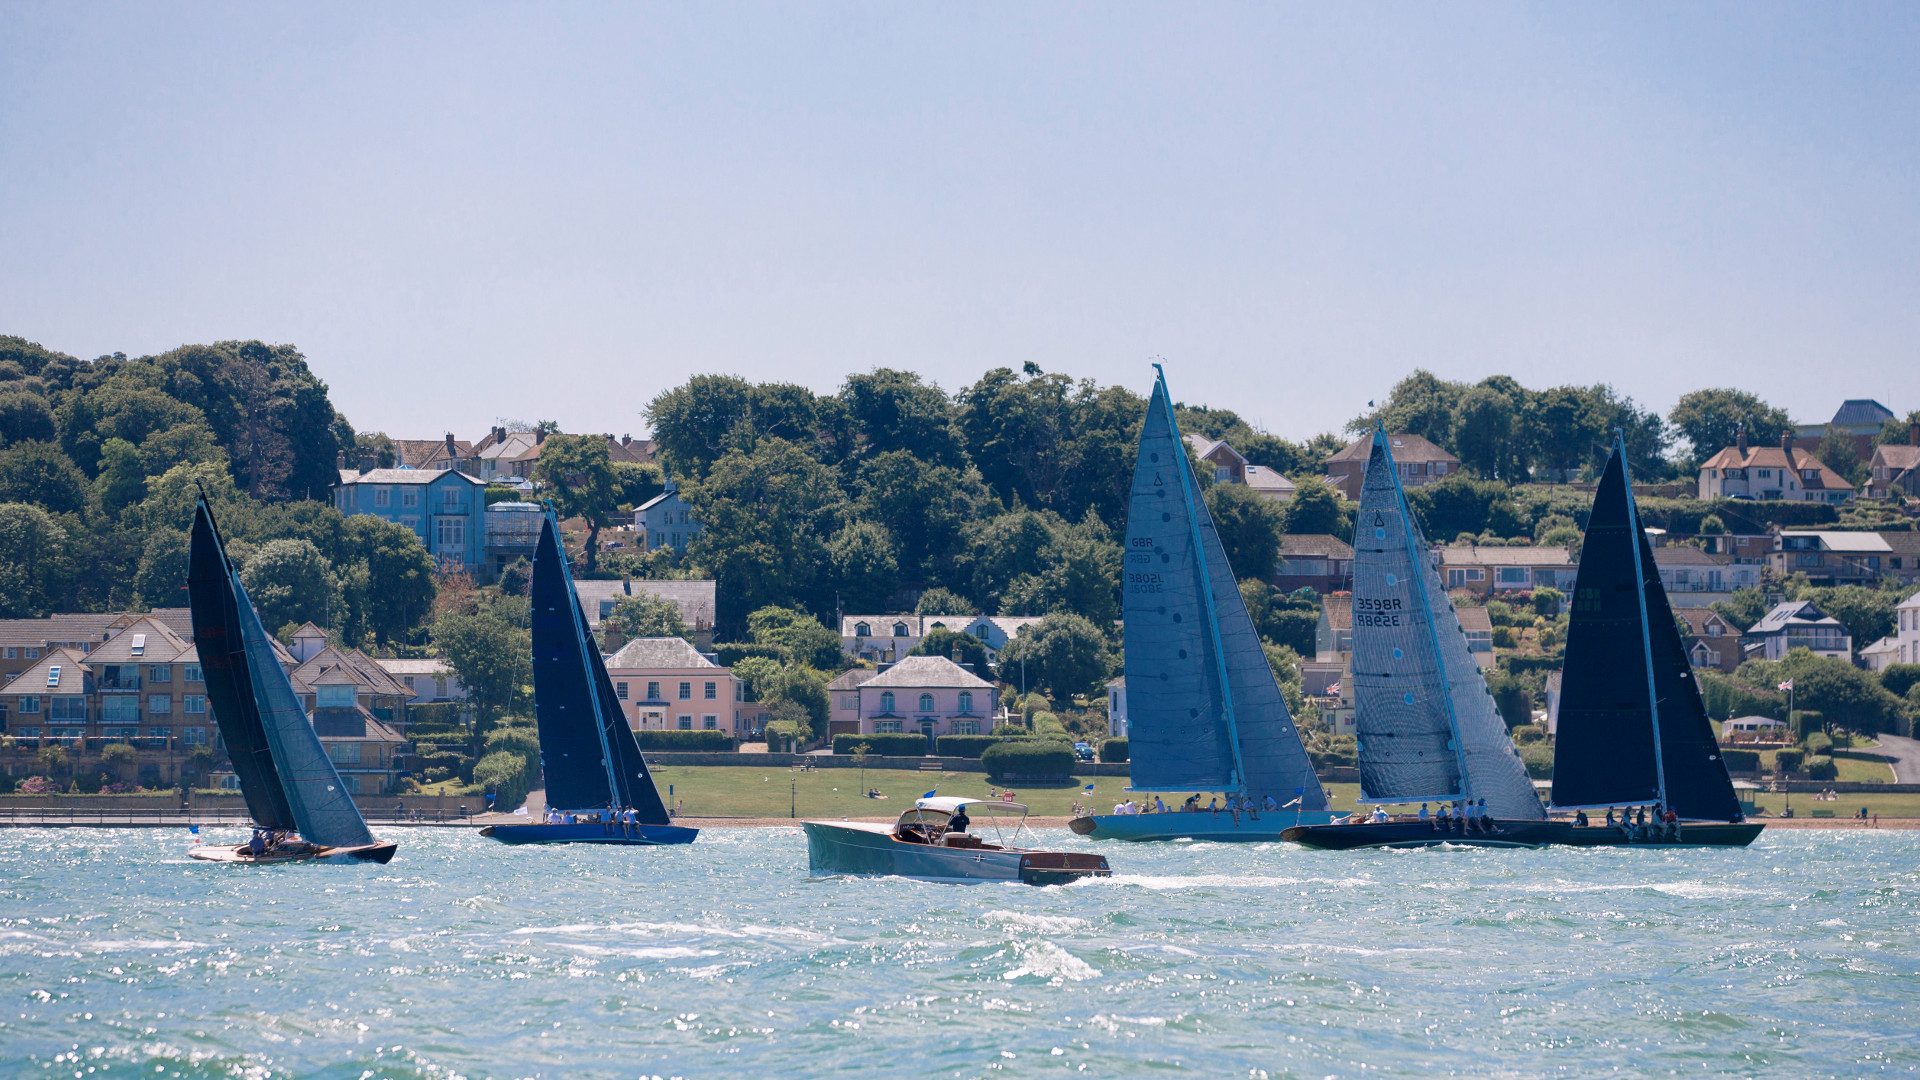 6 Spirits at Cowes 2017 website